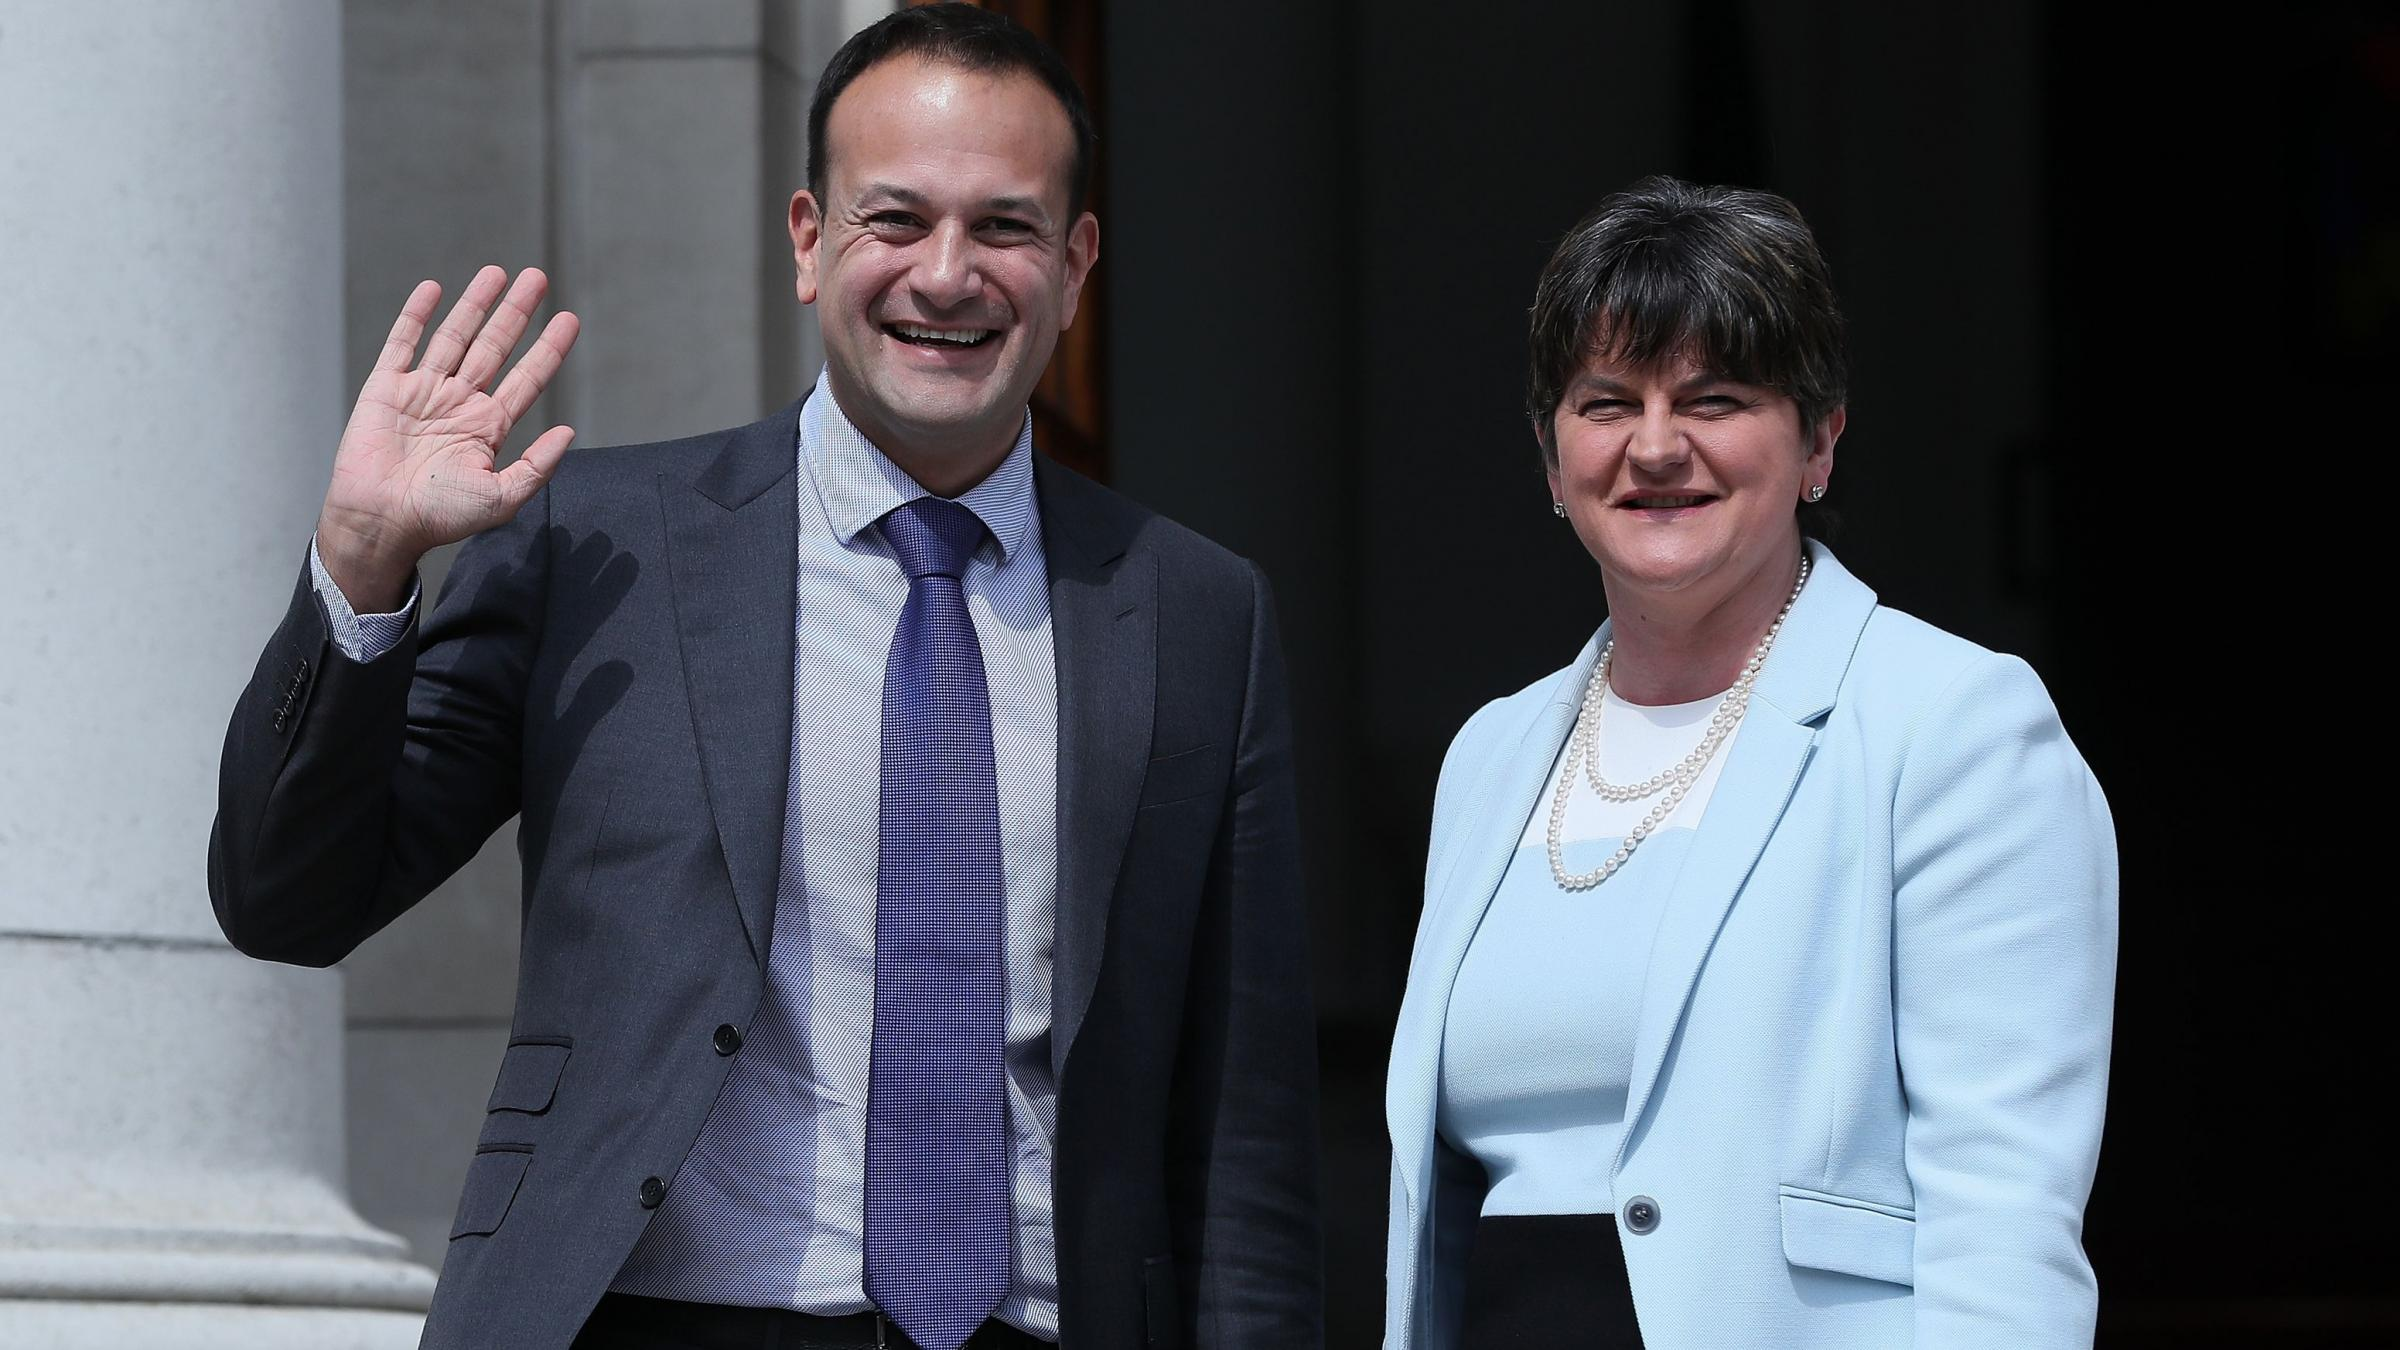 Theresa May 'reassures' Irish PM on DUP deal